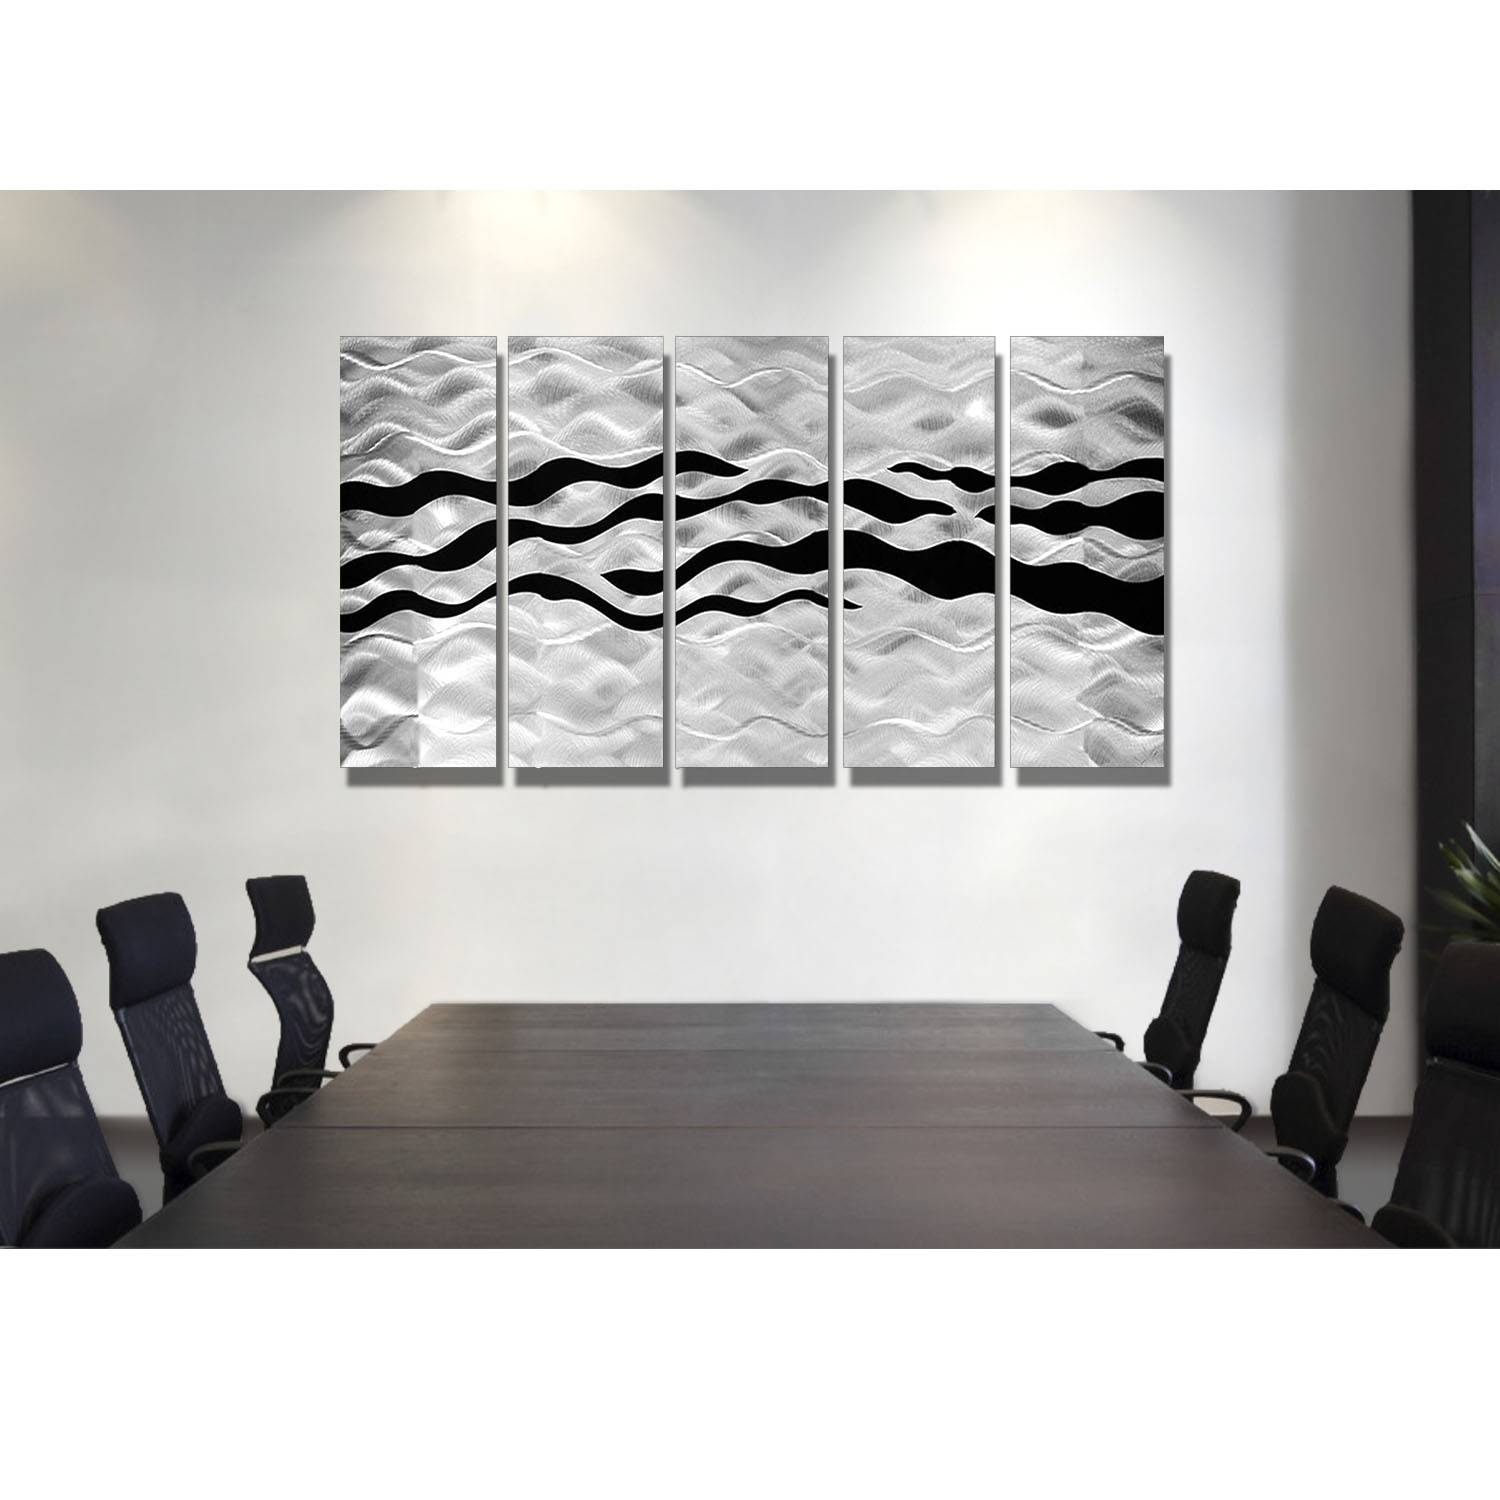 Onyx Oceana – Silver And Black Metal Wall Art – 5 Panel Wall Décor Within Newest Black Silver Wall Art (View 11 of 20)